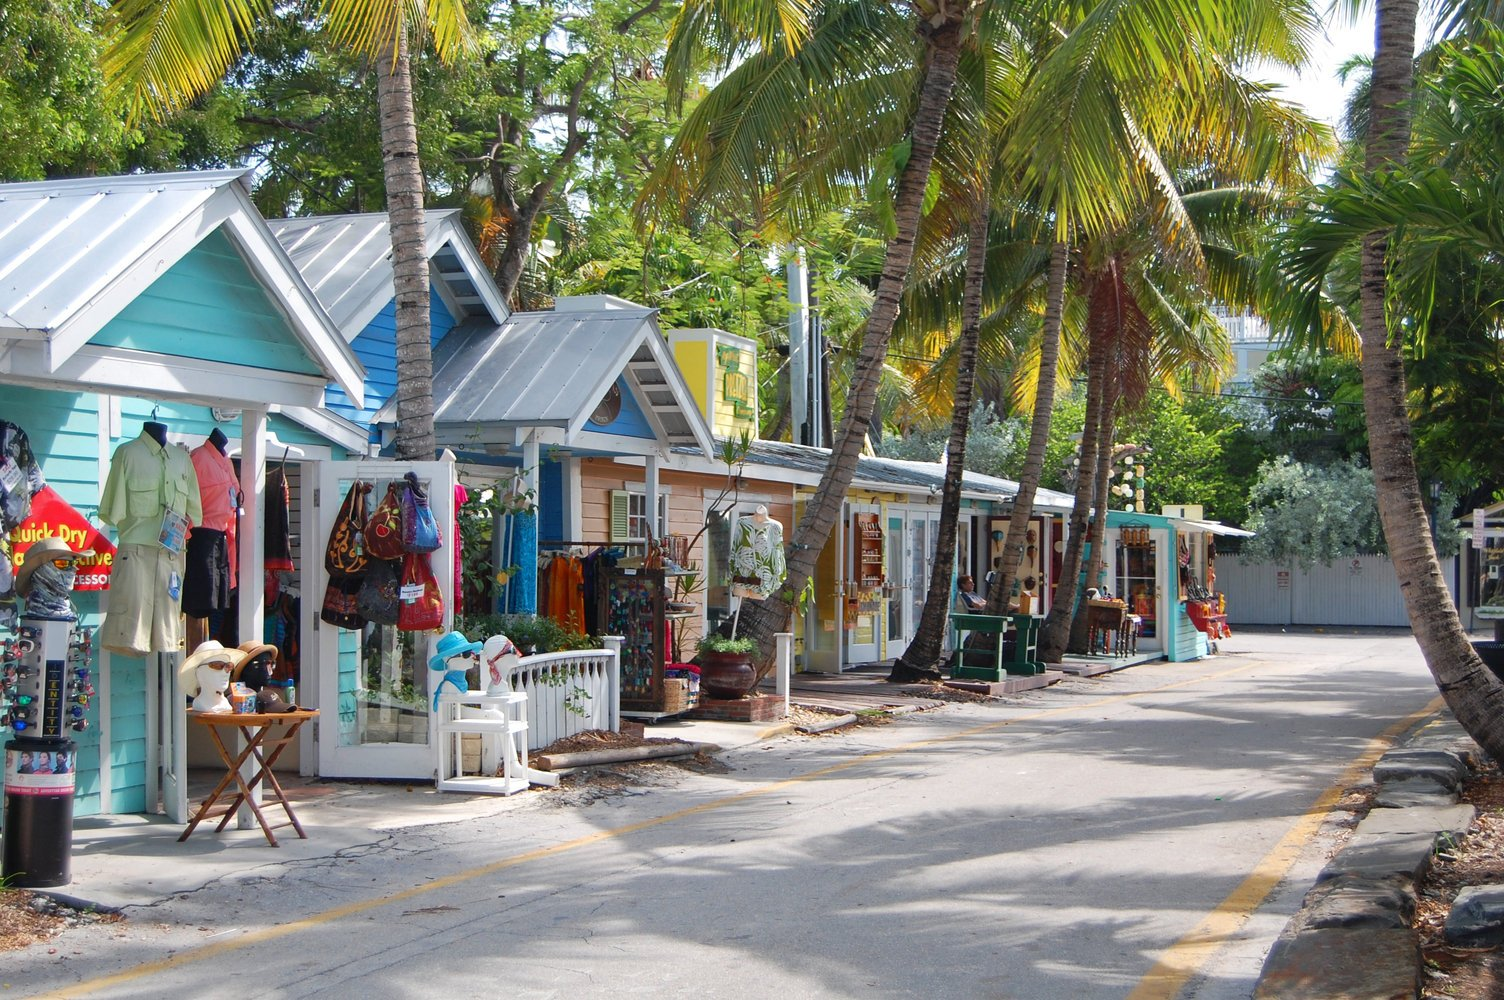 A street in Key West, several shops lined up